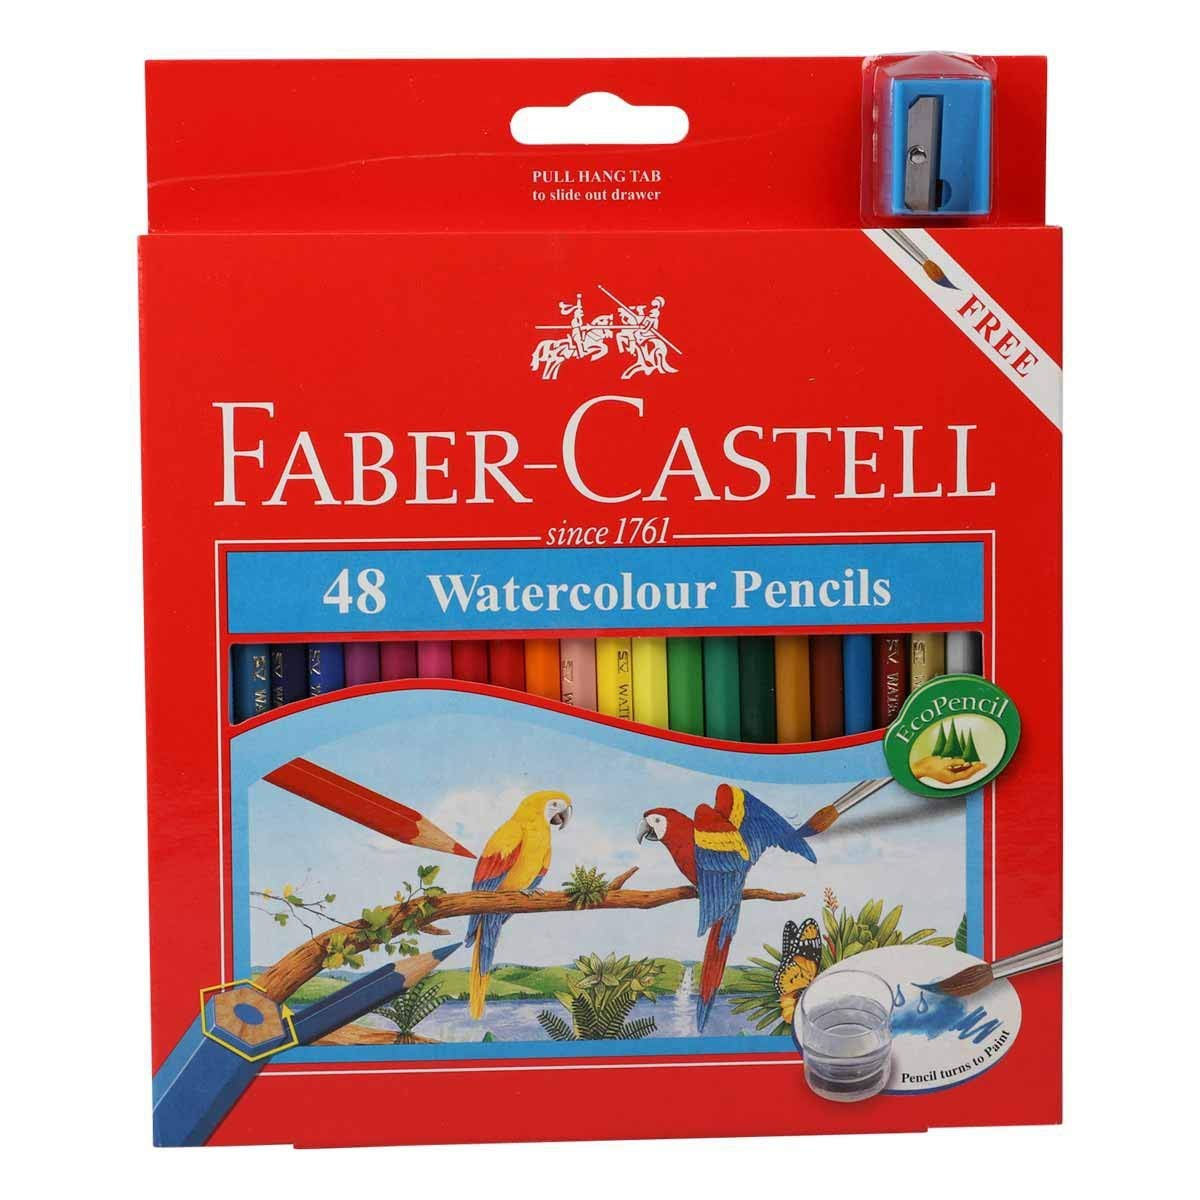 Faber Castell WaterColor Pencils with Sharpener and Brush, 48 WaterColored Pencils set 48 WaterColored Pencils set Faber-Castell 4336949125